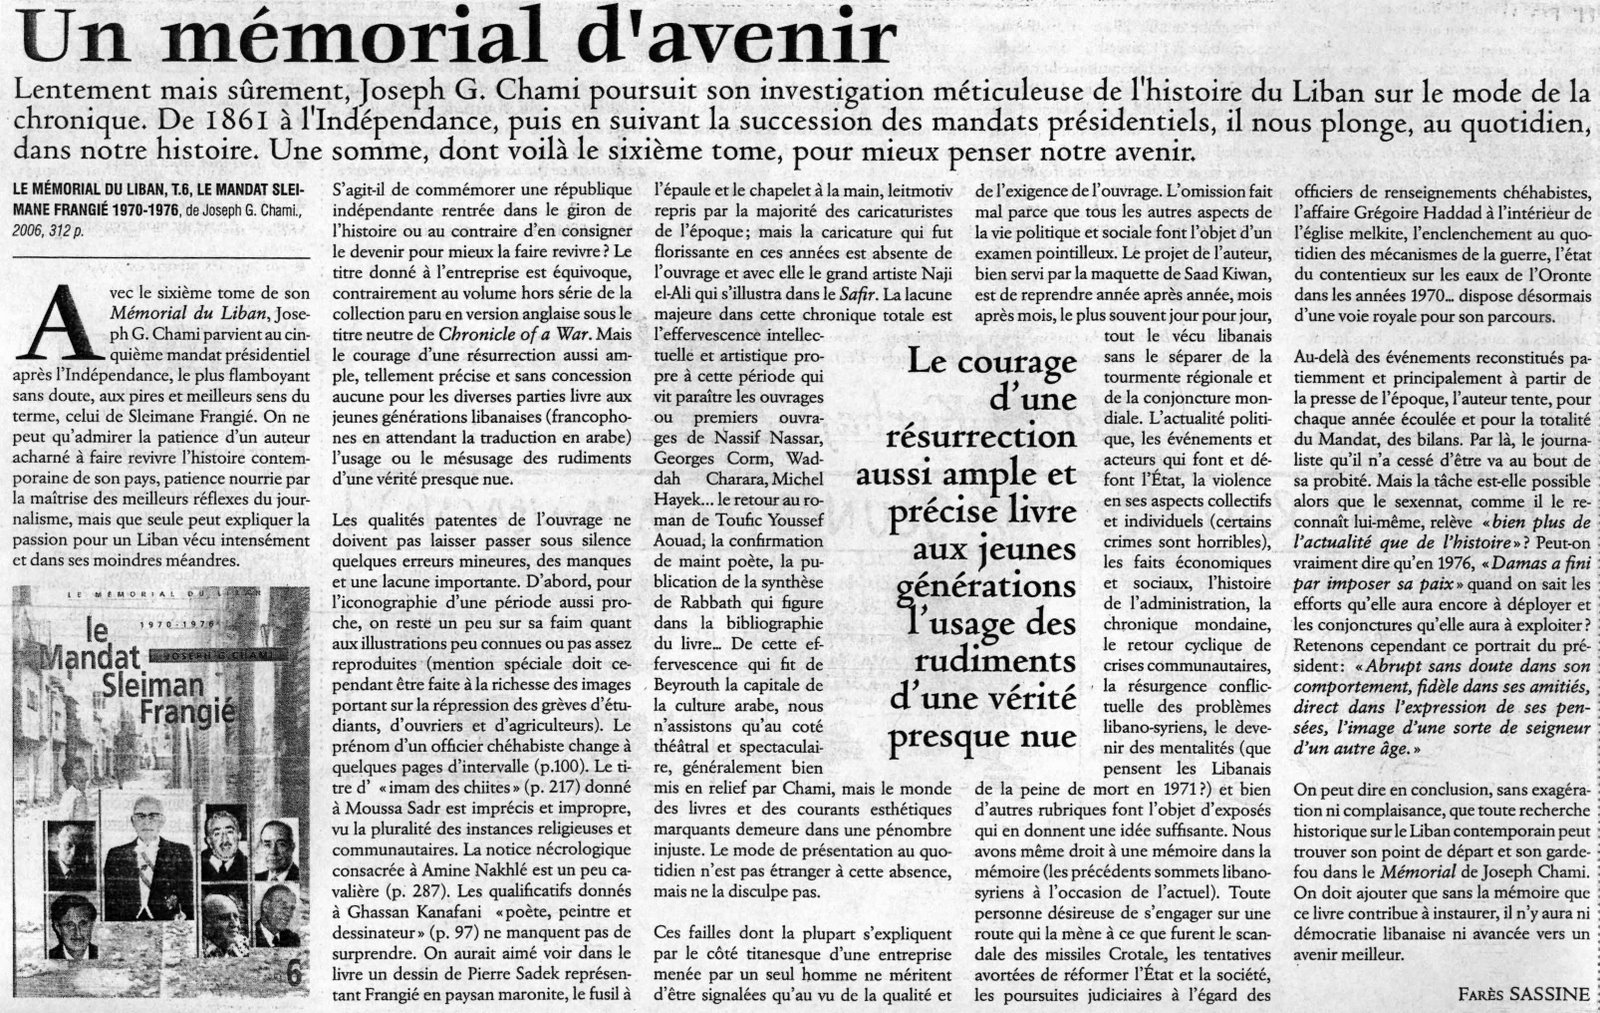 Article Fares Sassine